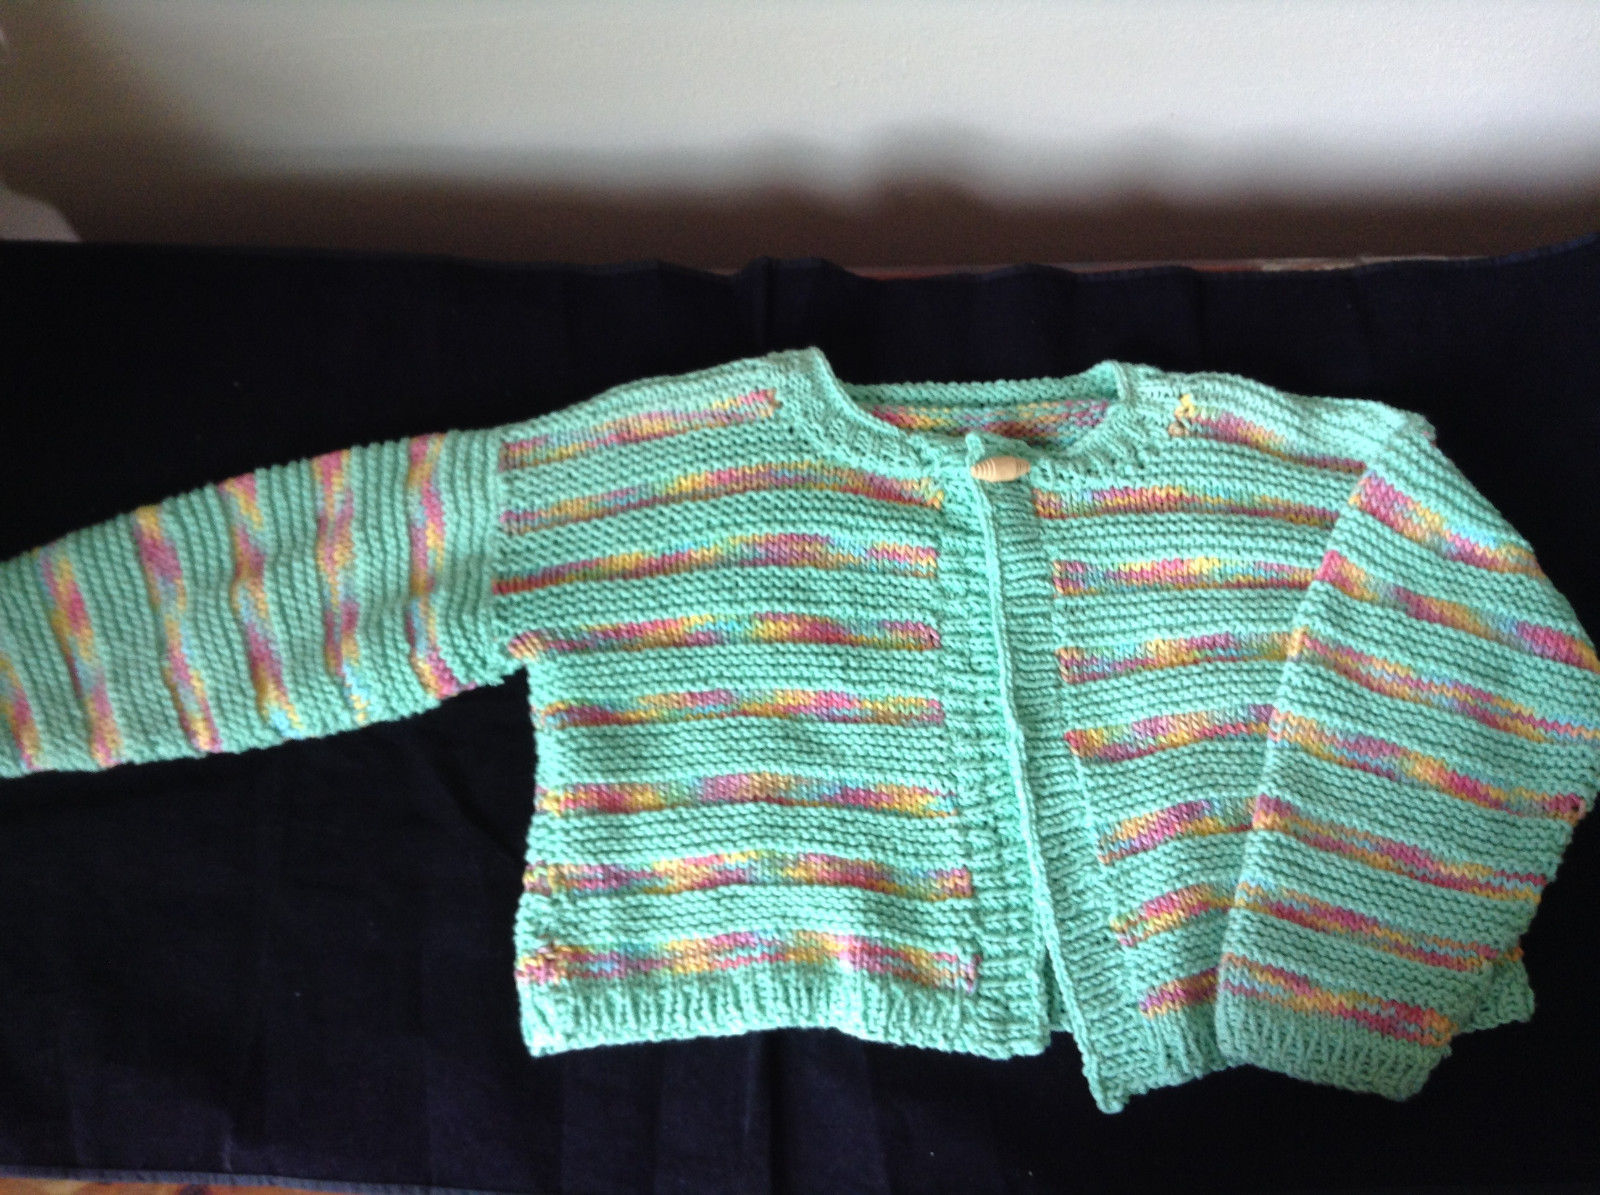 Knitted Sweater with Long Sleeves Green Yellow Pink Blue Striped Button on Top